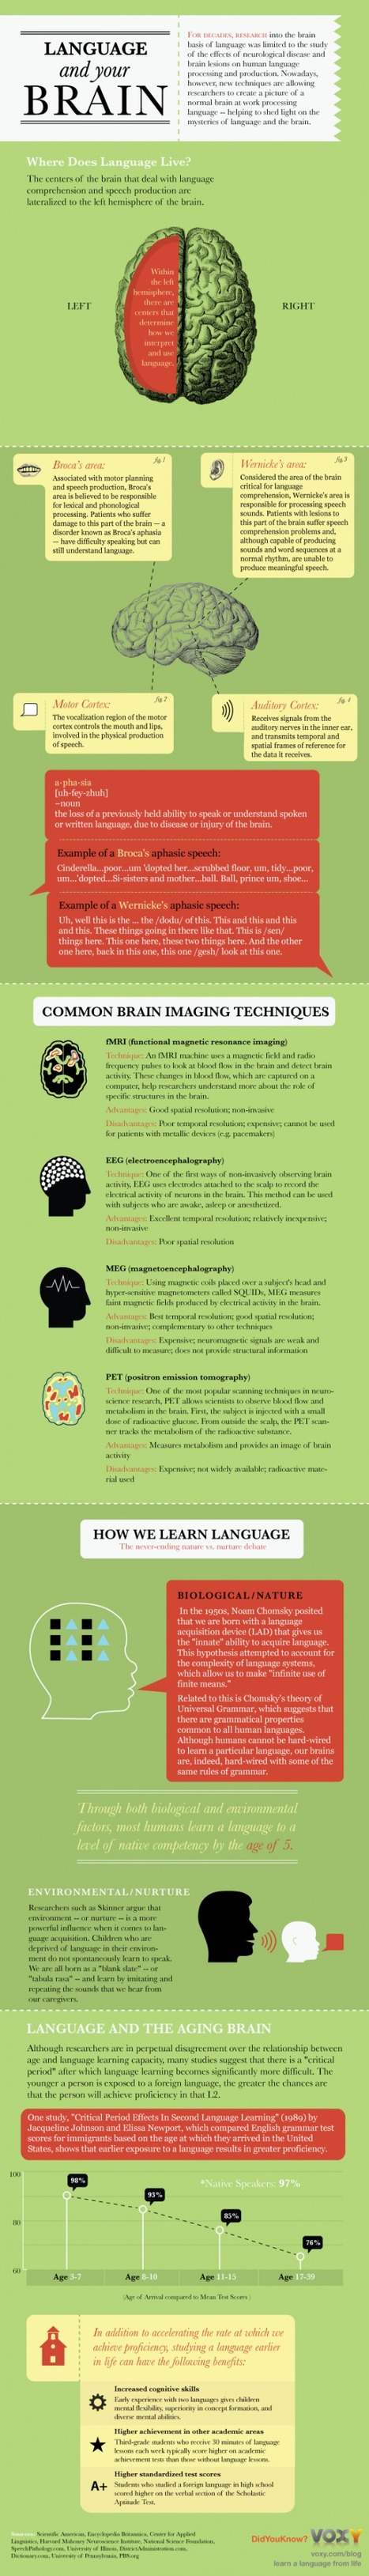 Language and Your Brain - INFOGRAPHIC | UDL & ICT in education | Scoop.it